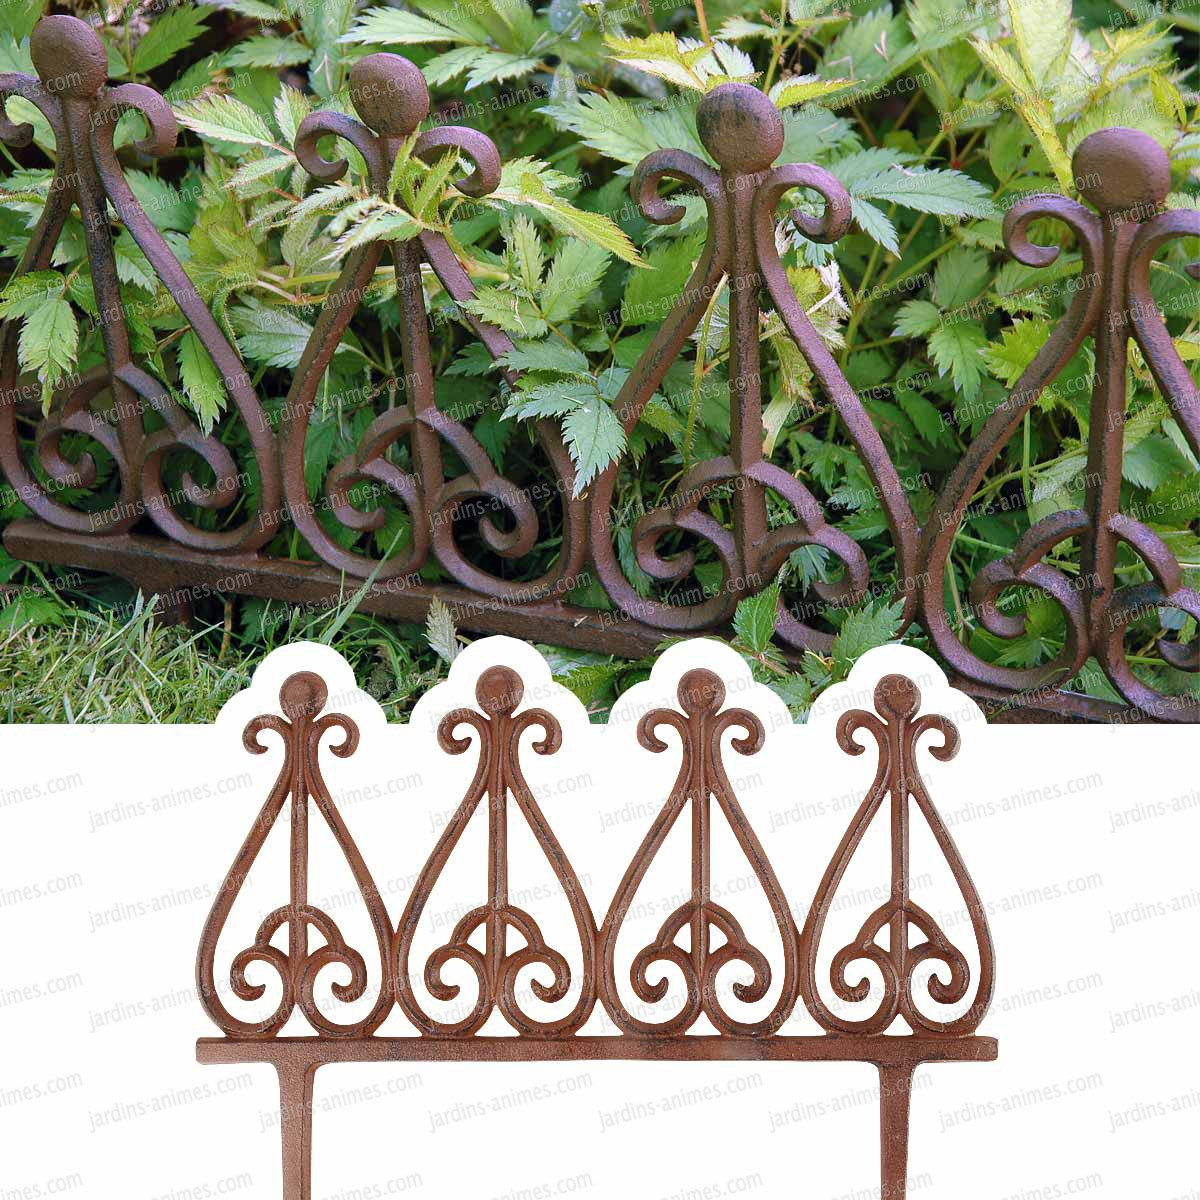 Bordure fonte style antique bordure de jardin for Fabriquer une bordure de jardin